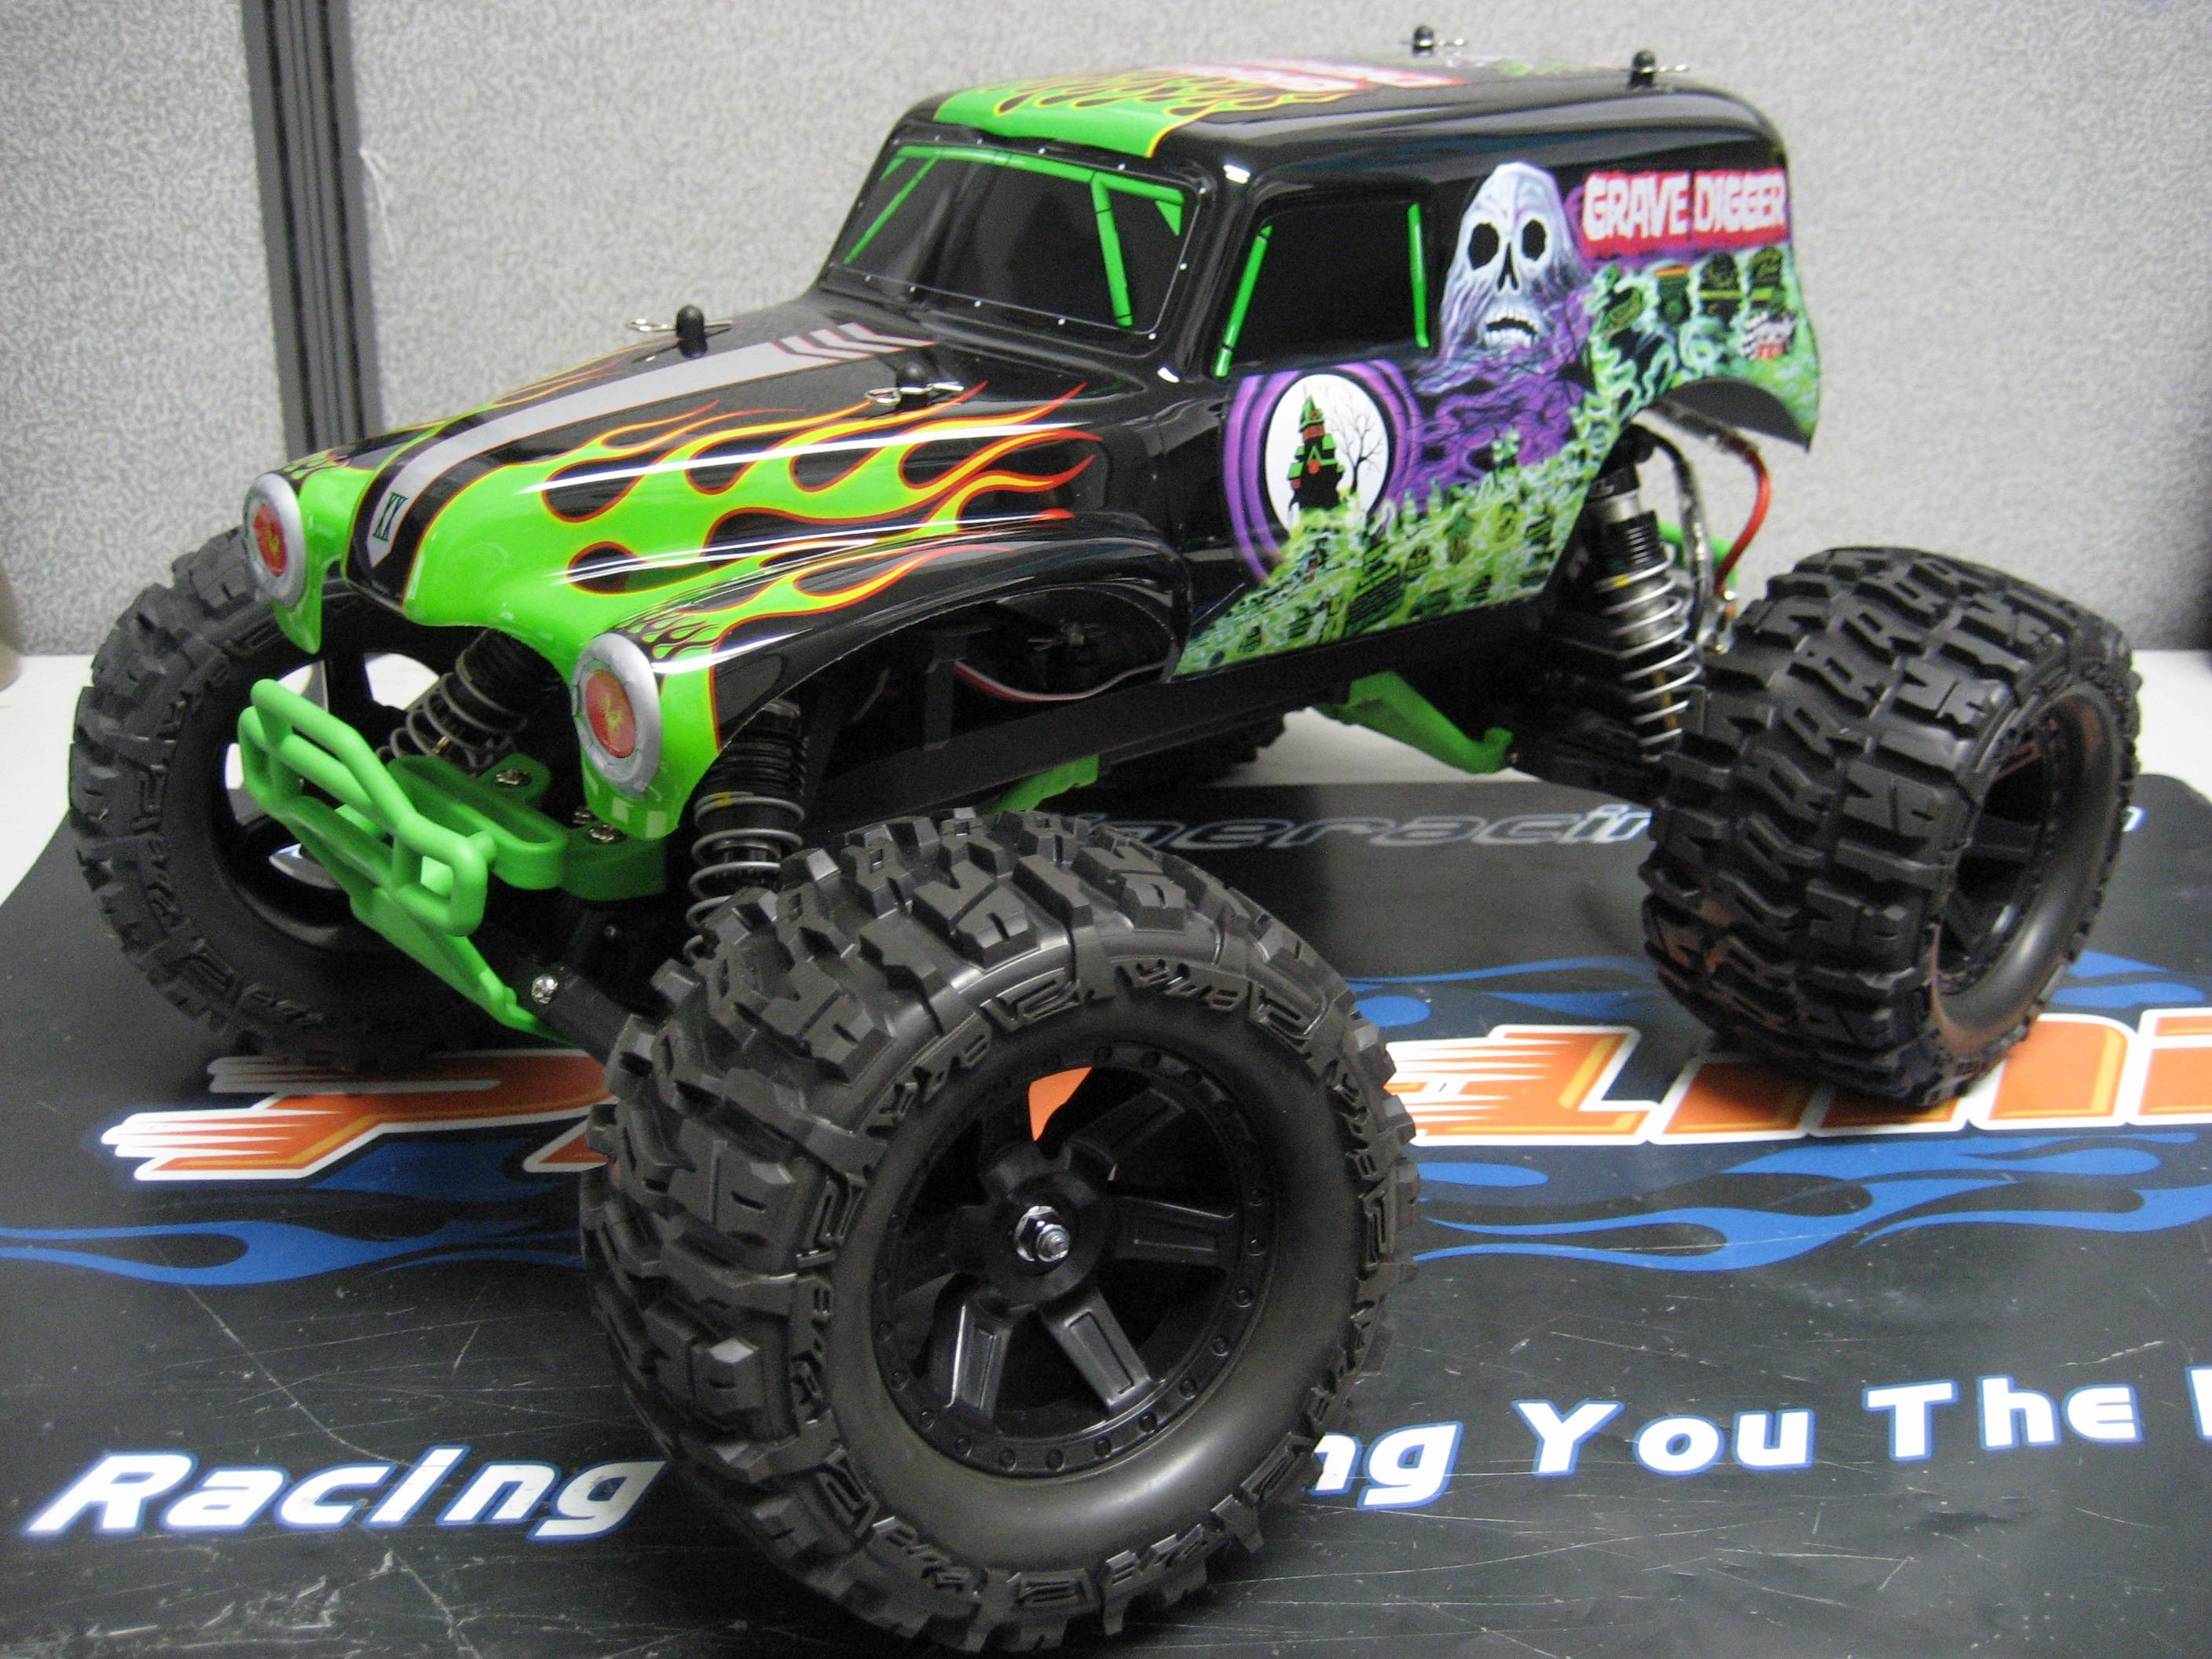 2816x2112 GRAVE DIGGER monster truck 4x4 race racing monster-truck fs .